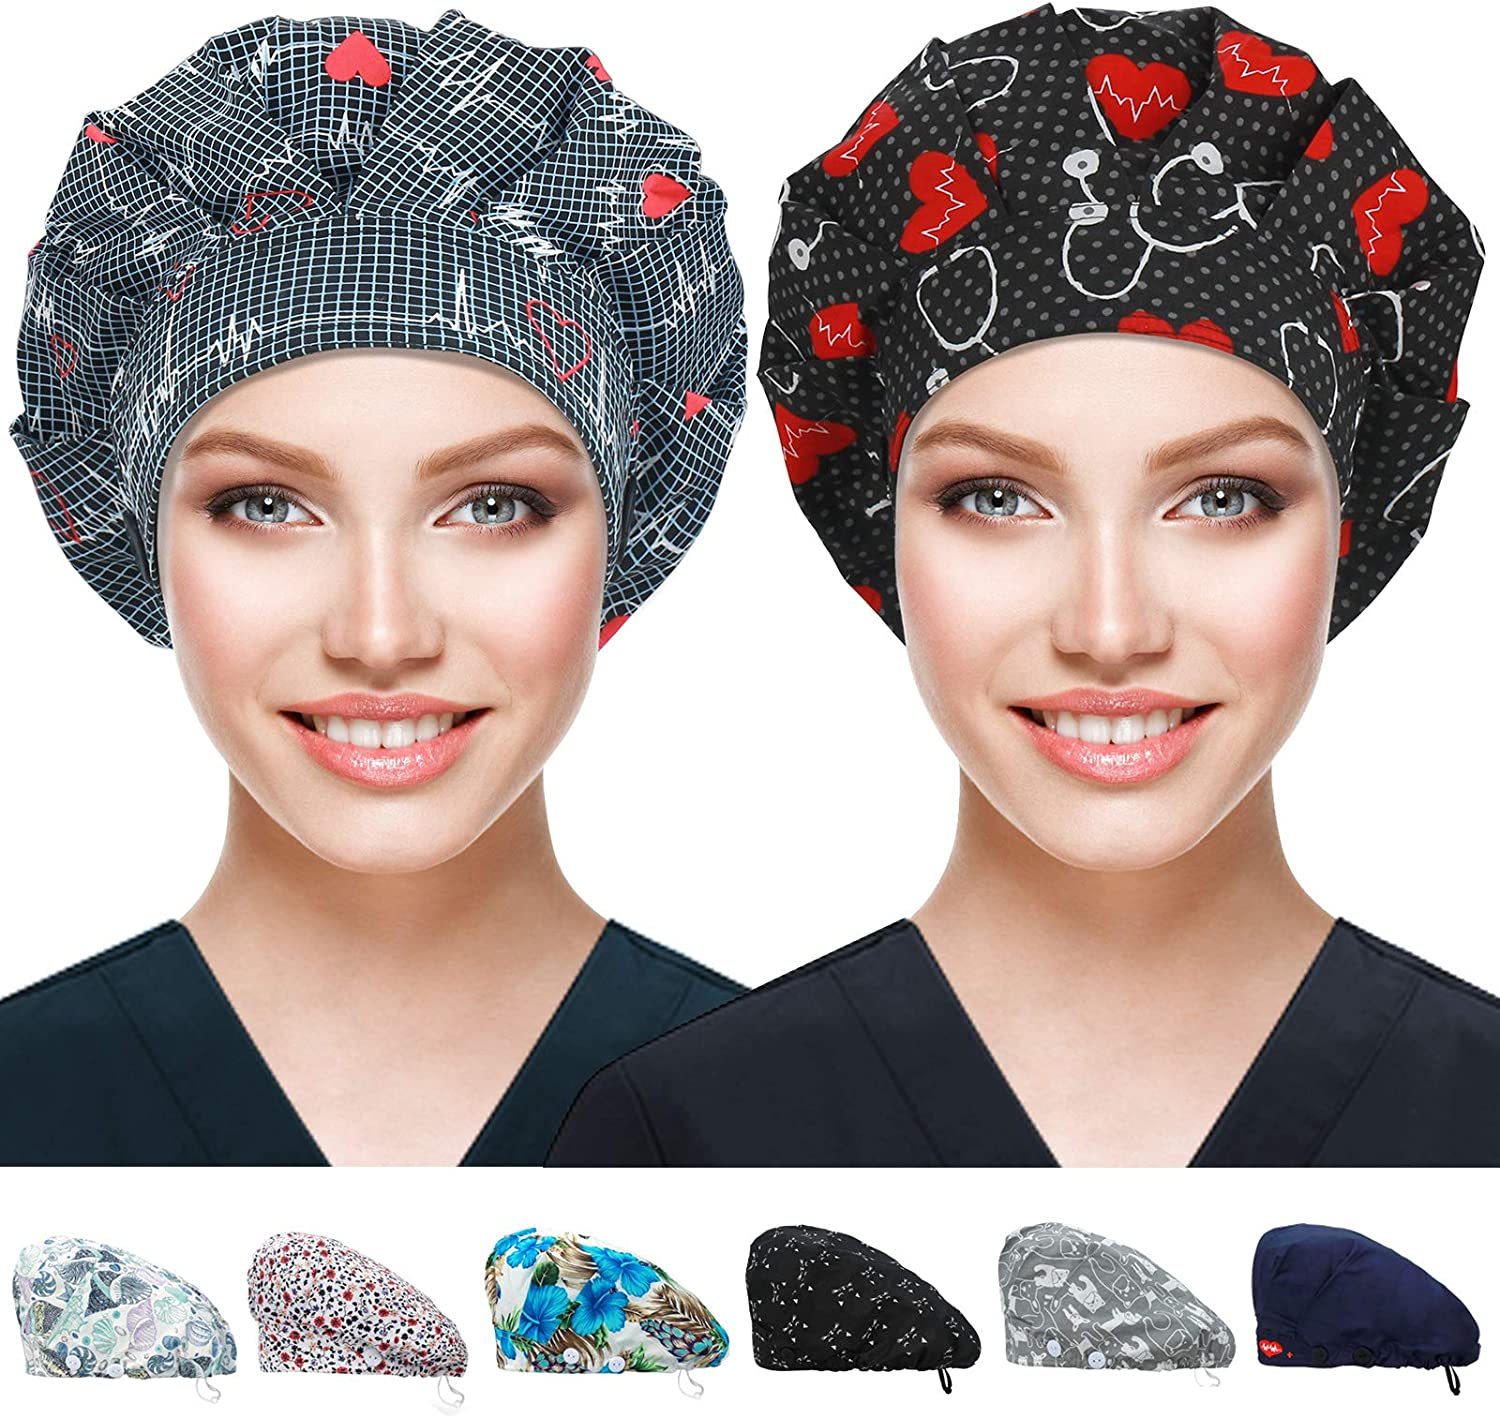 Purefitinsoles Bouffant Caps with Buttons 2021 model Swe Working Hats Max 72% OFF